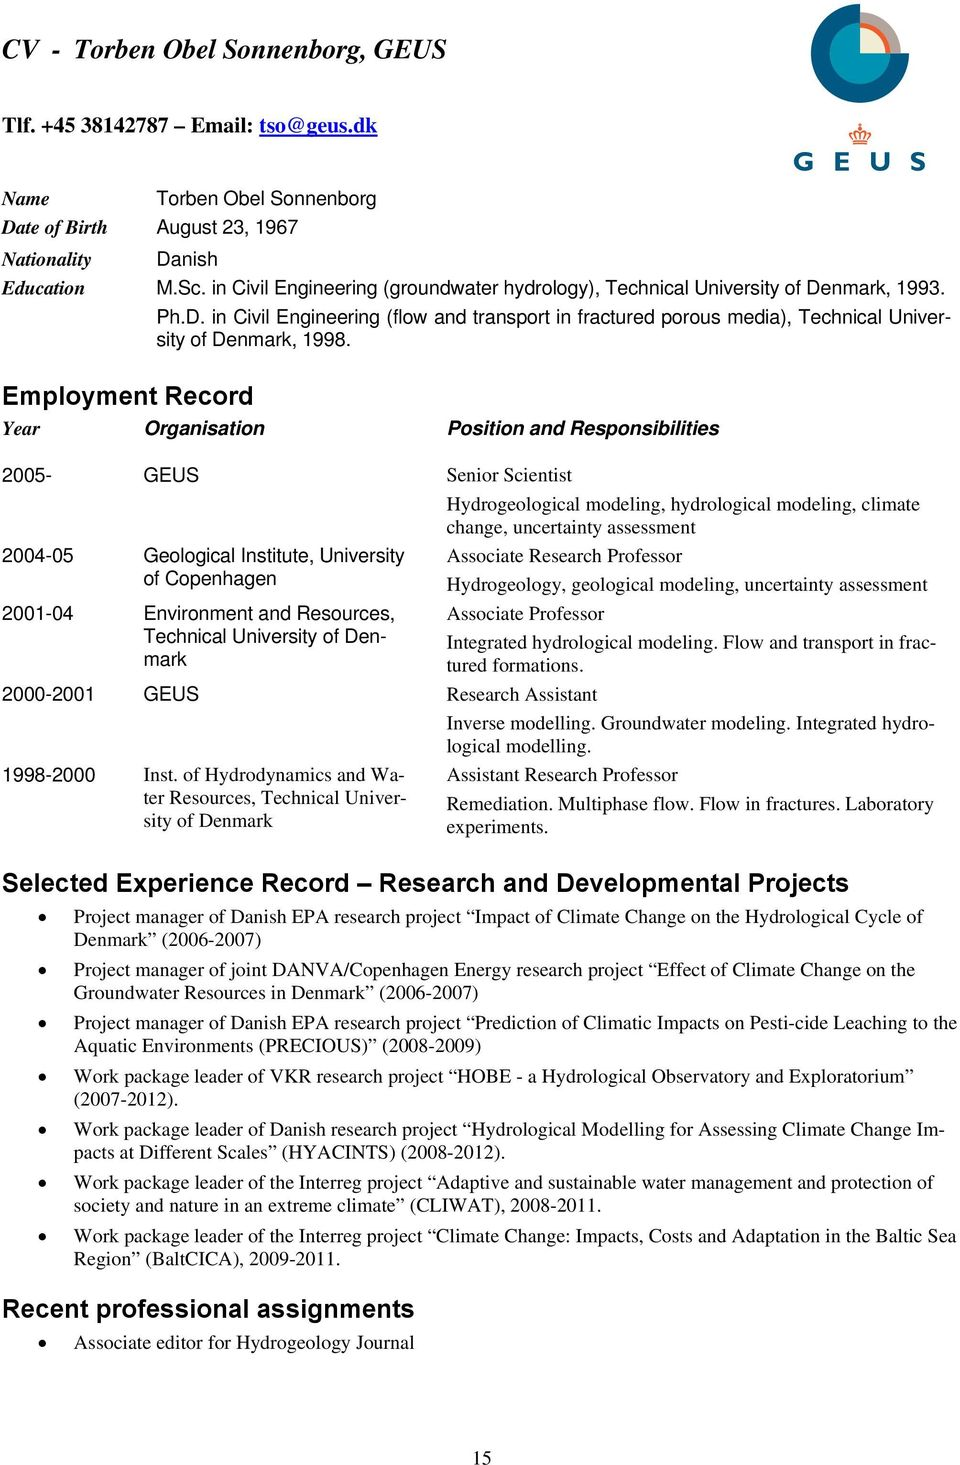 Employment Record Year Organisation Position and Responsibilities 2005- GEUS Senior Scientist Hydrogeological modeling, hydrological modeling, climate change, uncertainty assessment 2004-05